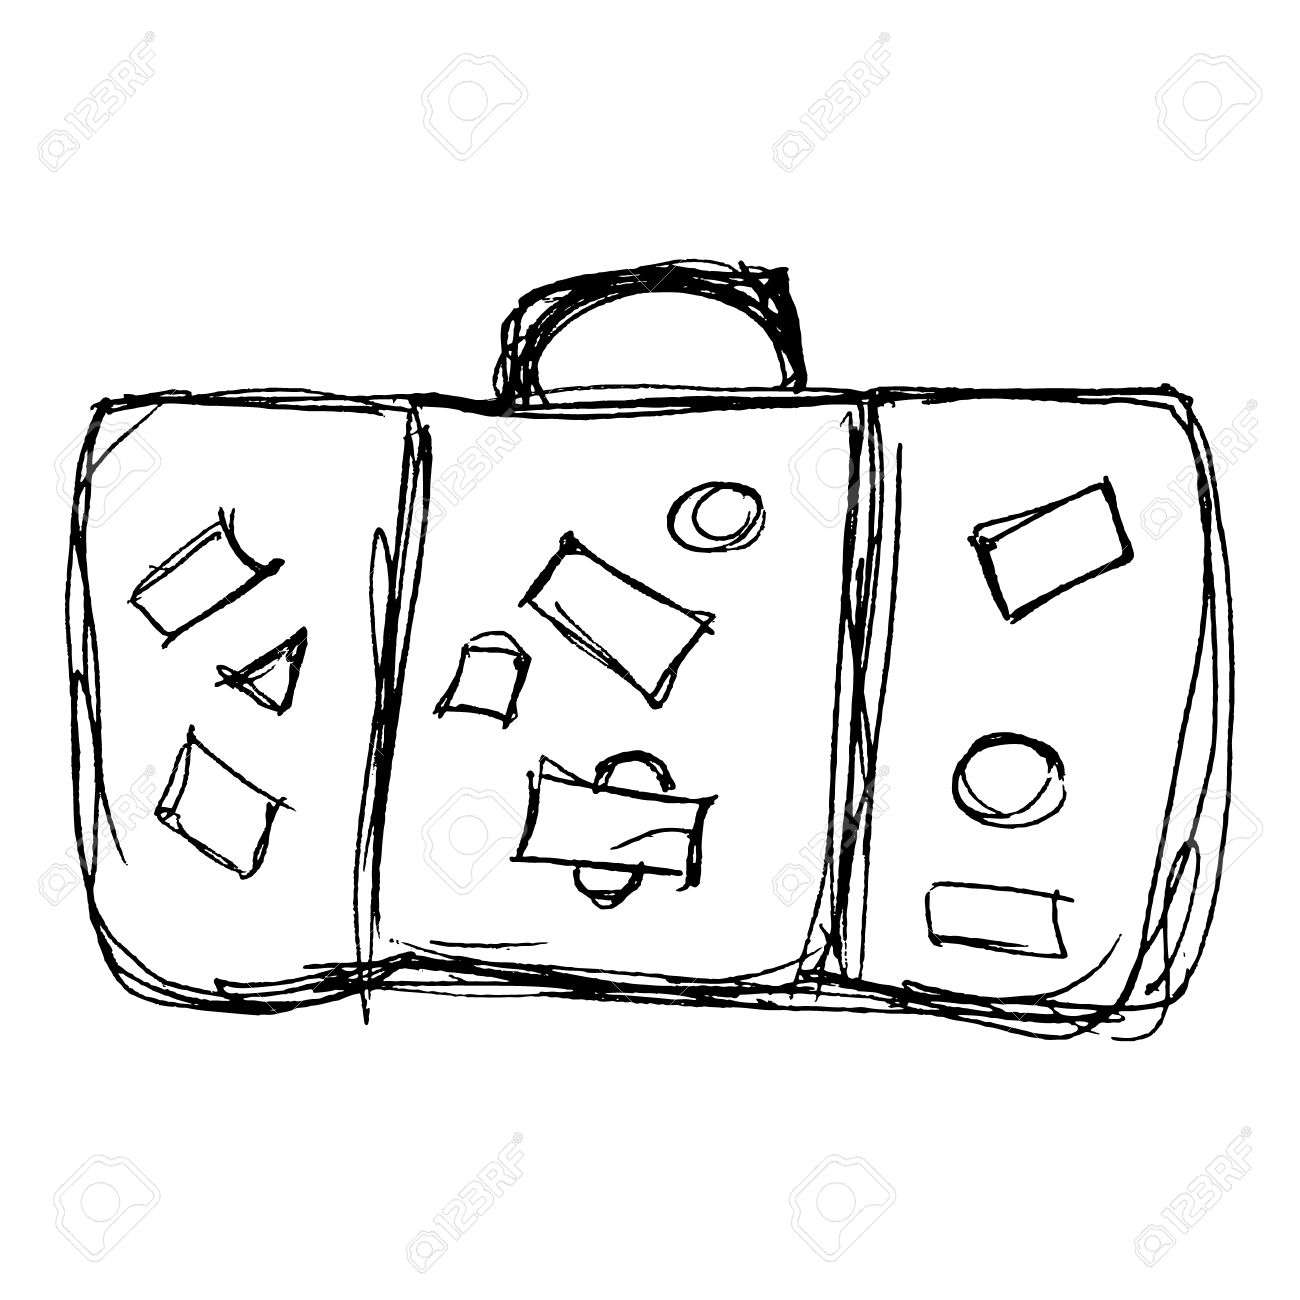 1300x1300 Hand Drawn Illustration Of An Old Suitcase Royalty Free Cliparts